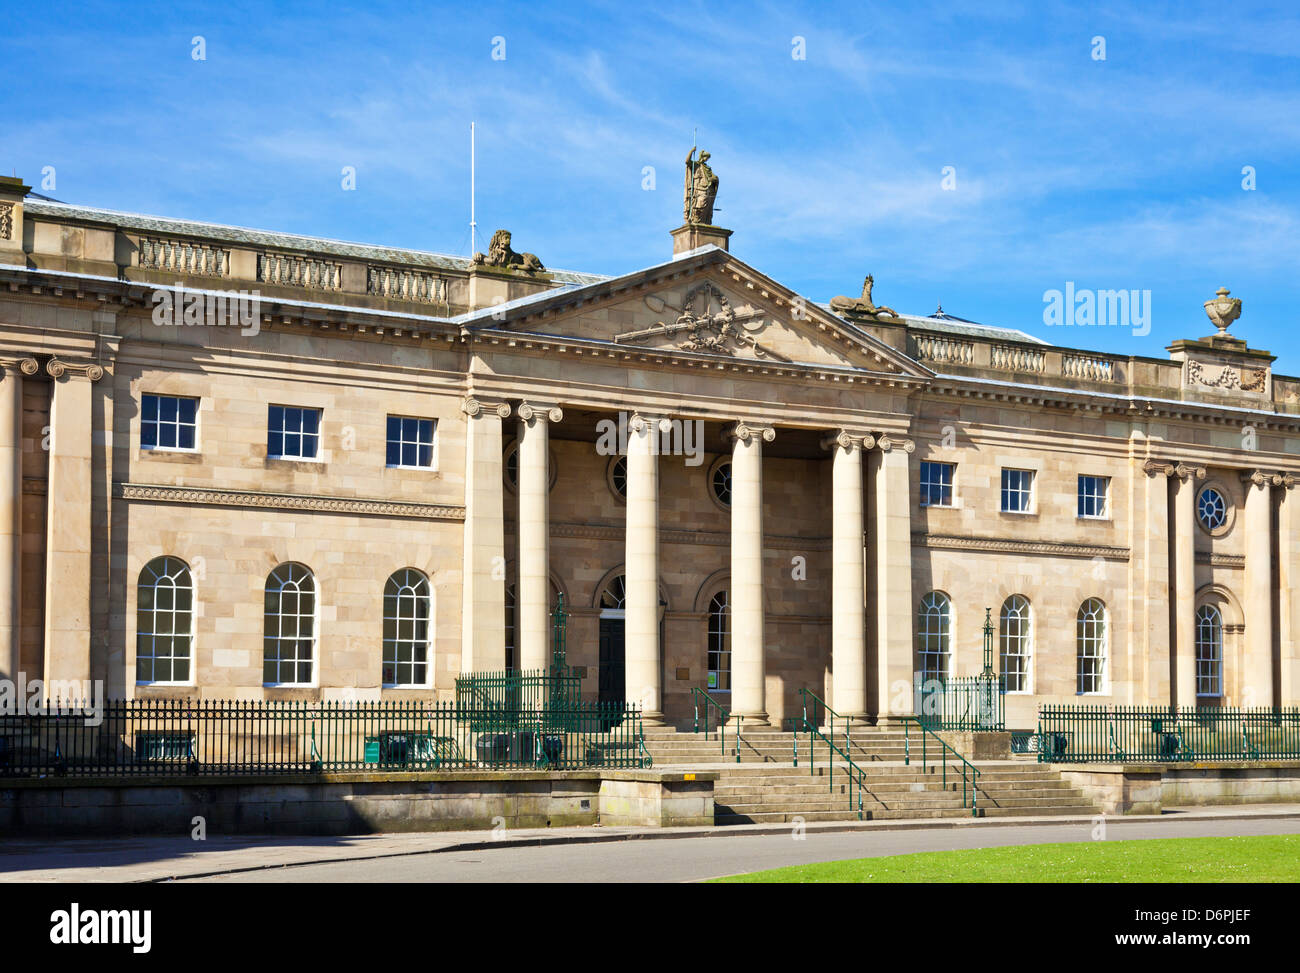 The Crown court York North Yorkshire England UK GB EU Europe - Stock Image